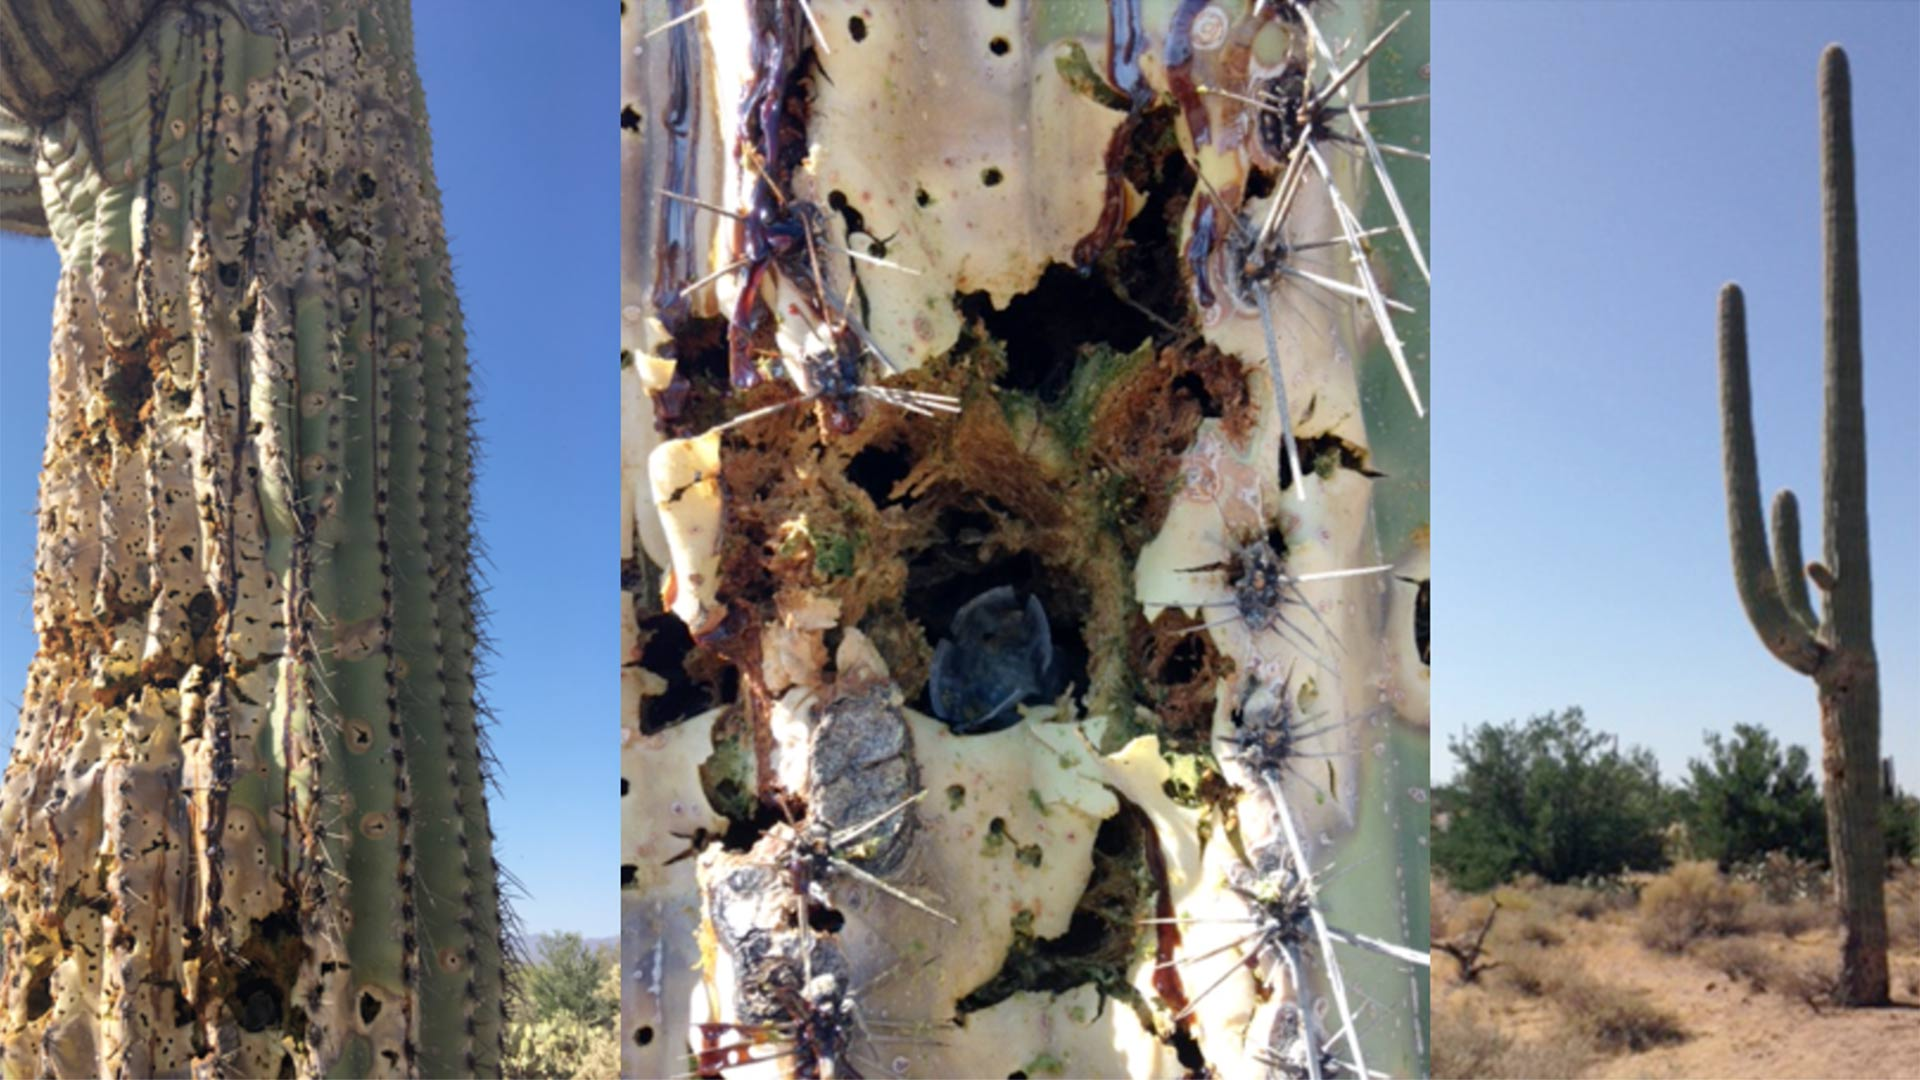 This century-old saguaro cactus was found damaged by a shotgun.